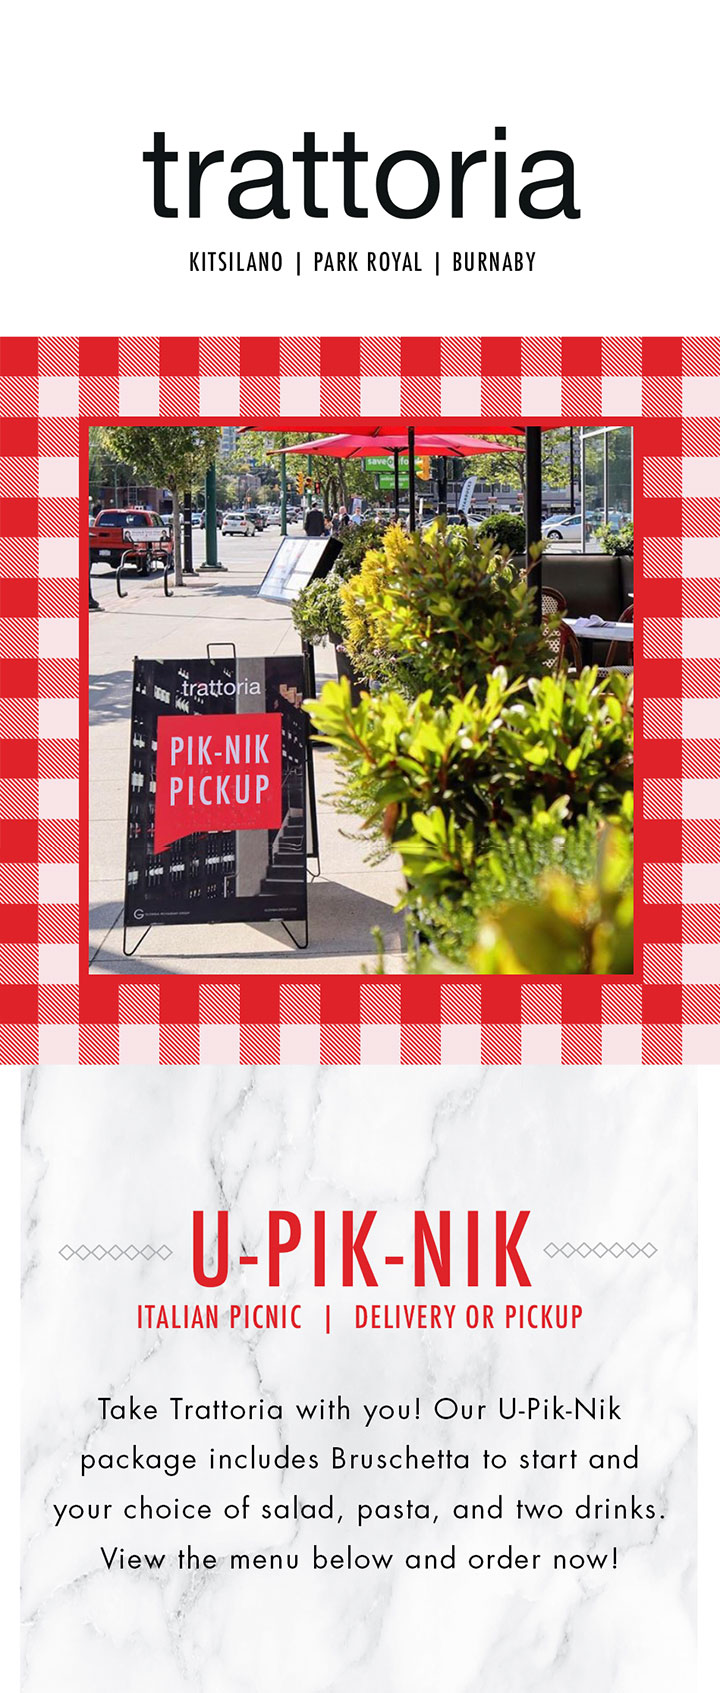 Take Trattoria with you on your summer adventures! Our U-Pik-Nik package includes Bruschetta to start and your choice of salad, pasta, and two drinks. View the menu  below and order now!